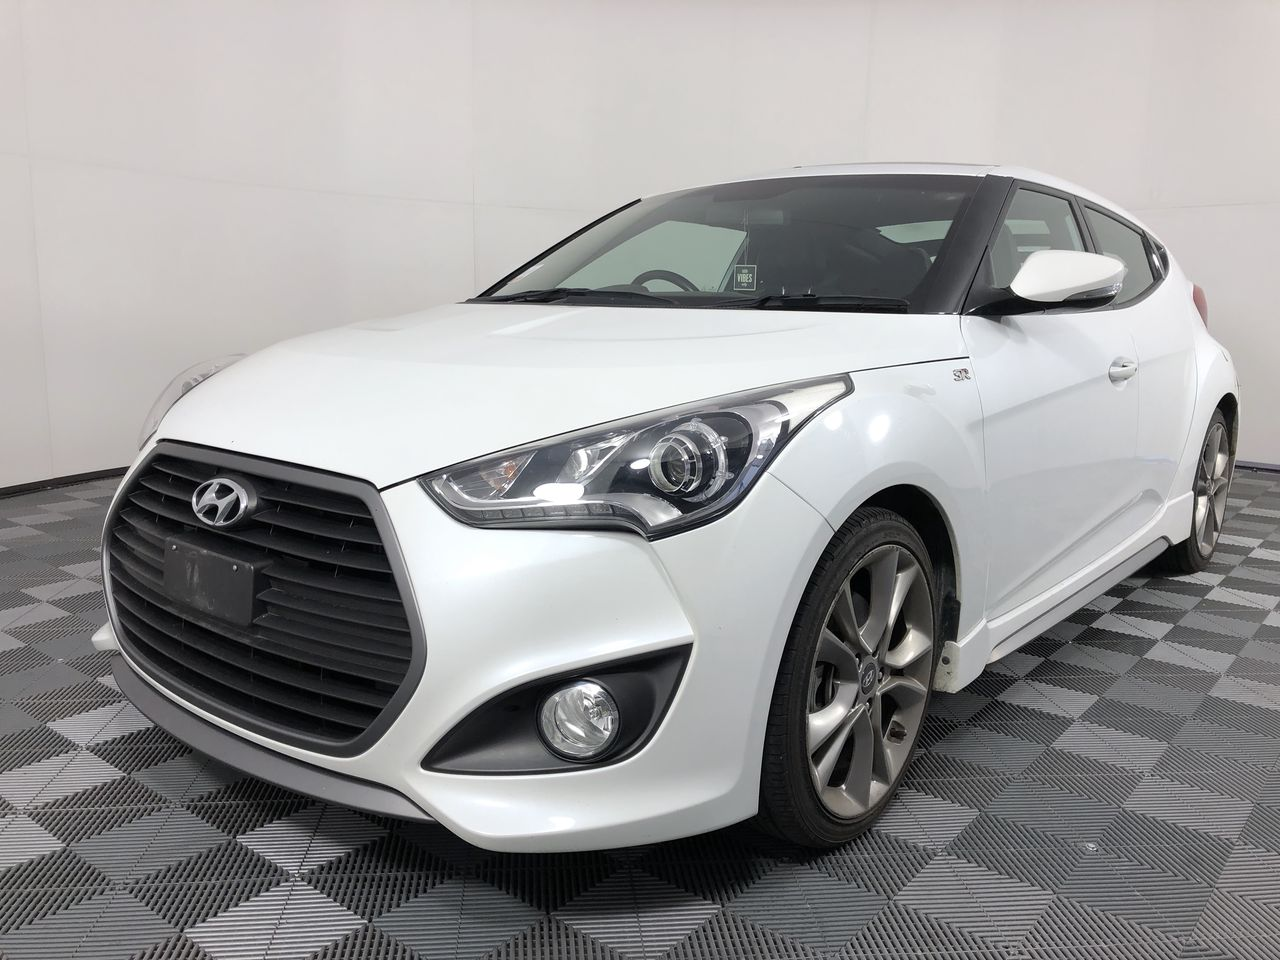 2015 Hyundai Veloster SR TURBO FS Automatic Coupe